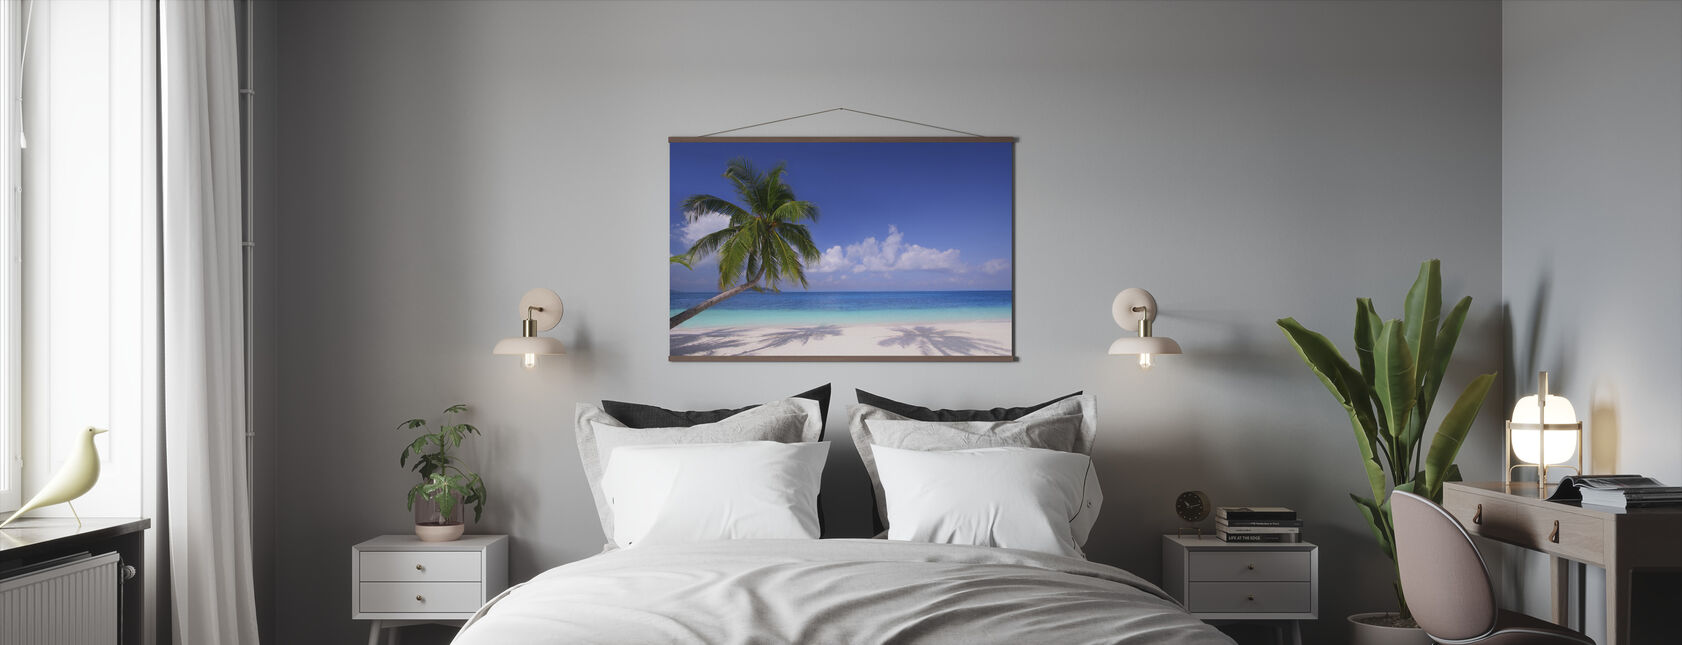 Island Paradise - Poster - Bedroom